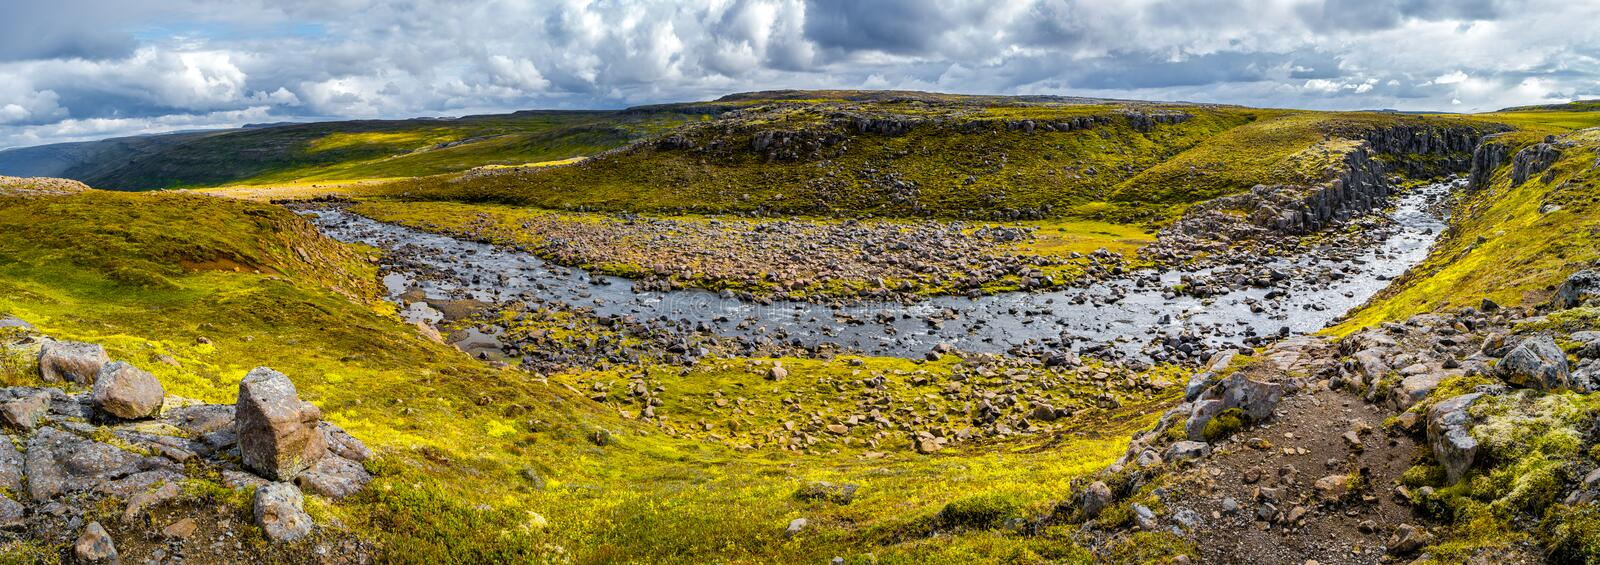 Panoramic view of beautiful colorful Icelandic landscape, Icelan royalty free stock photography